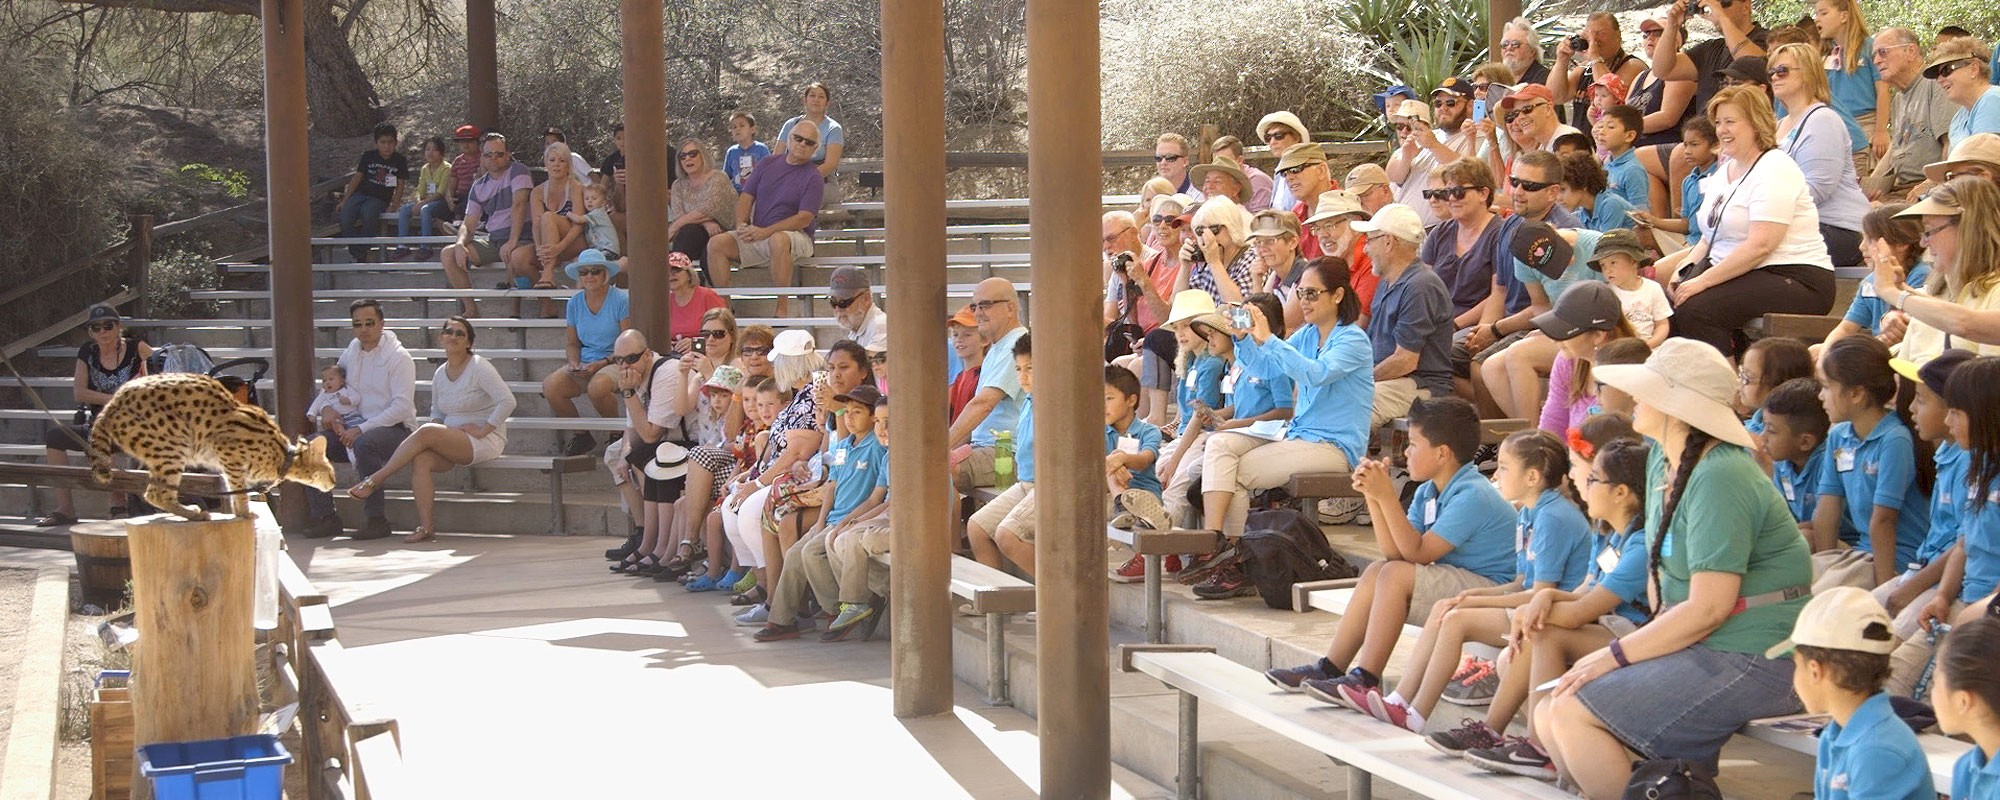 Field trips at The Living Desert Zoo and Gardens.